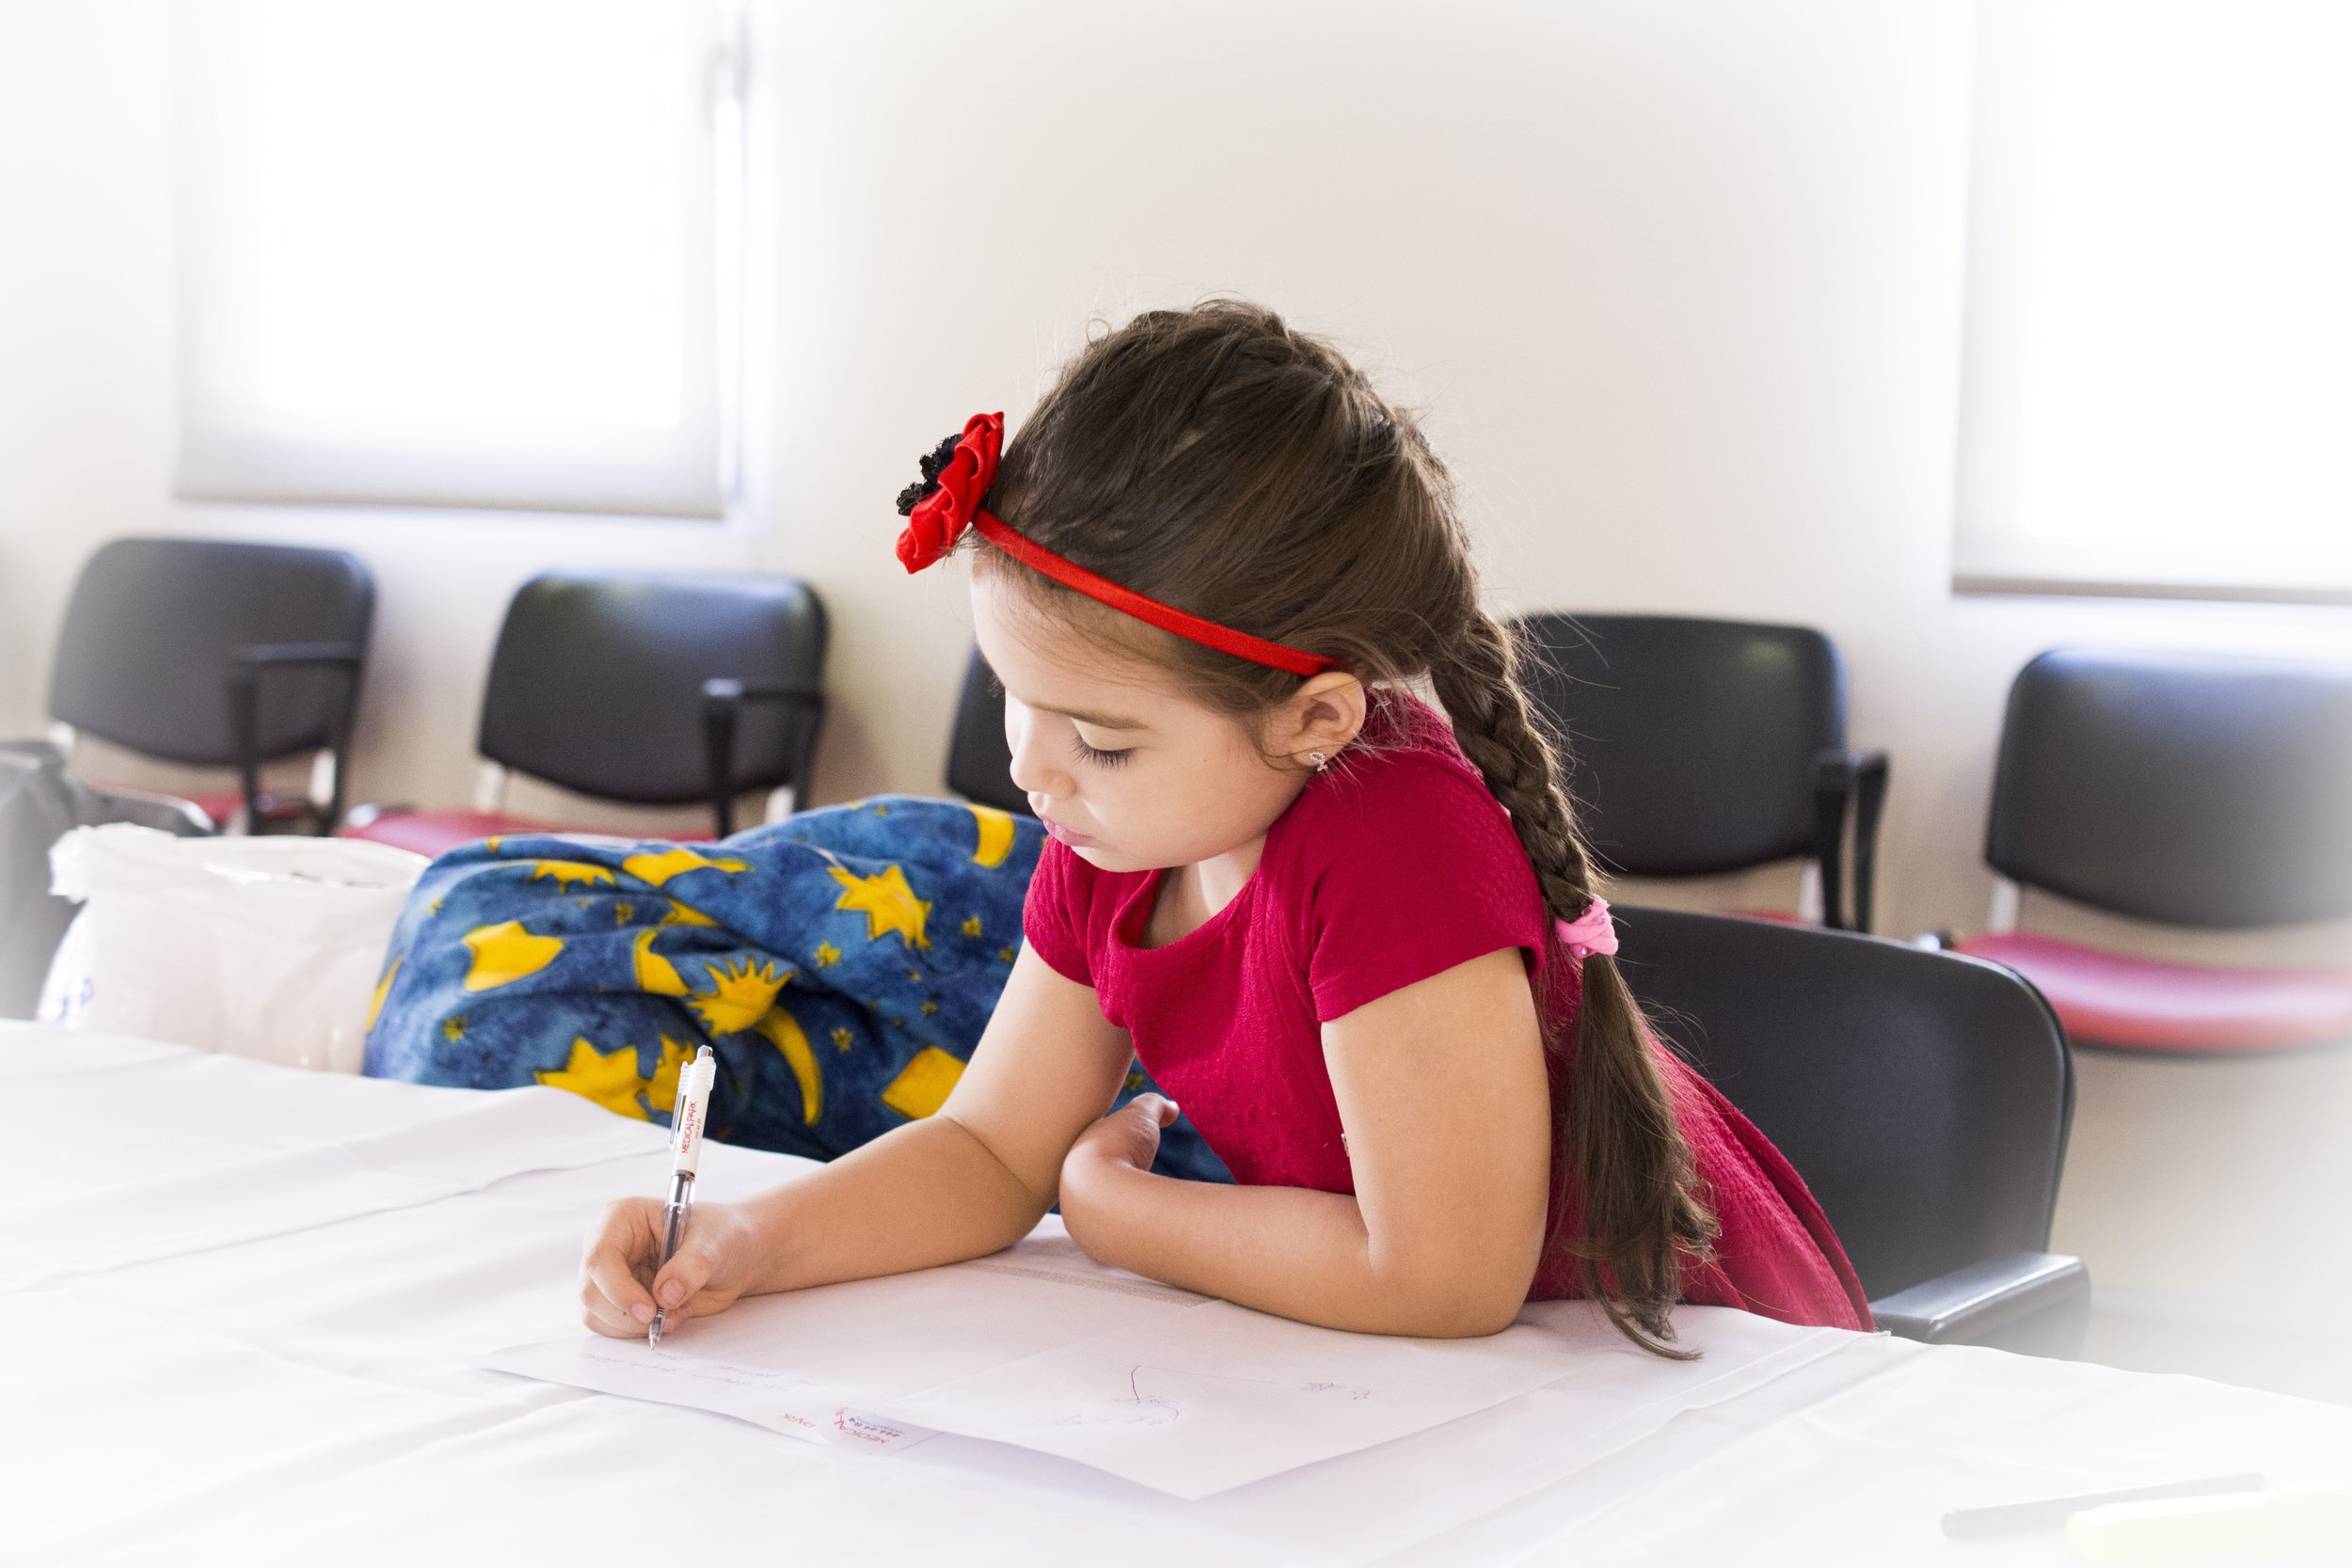 Get Started - Our mission is to transform how students learn and equip them with the confidence and skills they need to reach their potential.We do this by using Applied Behavior Analysis (ABA; the science of learning) and Precision Teaching.Ready to take the next step? Find out if Aim Learning Center is a good fit for your child and your family.